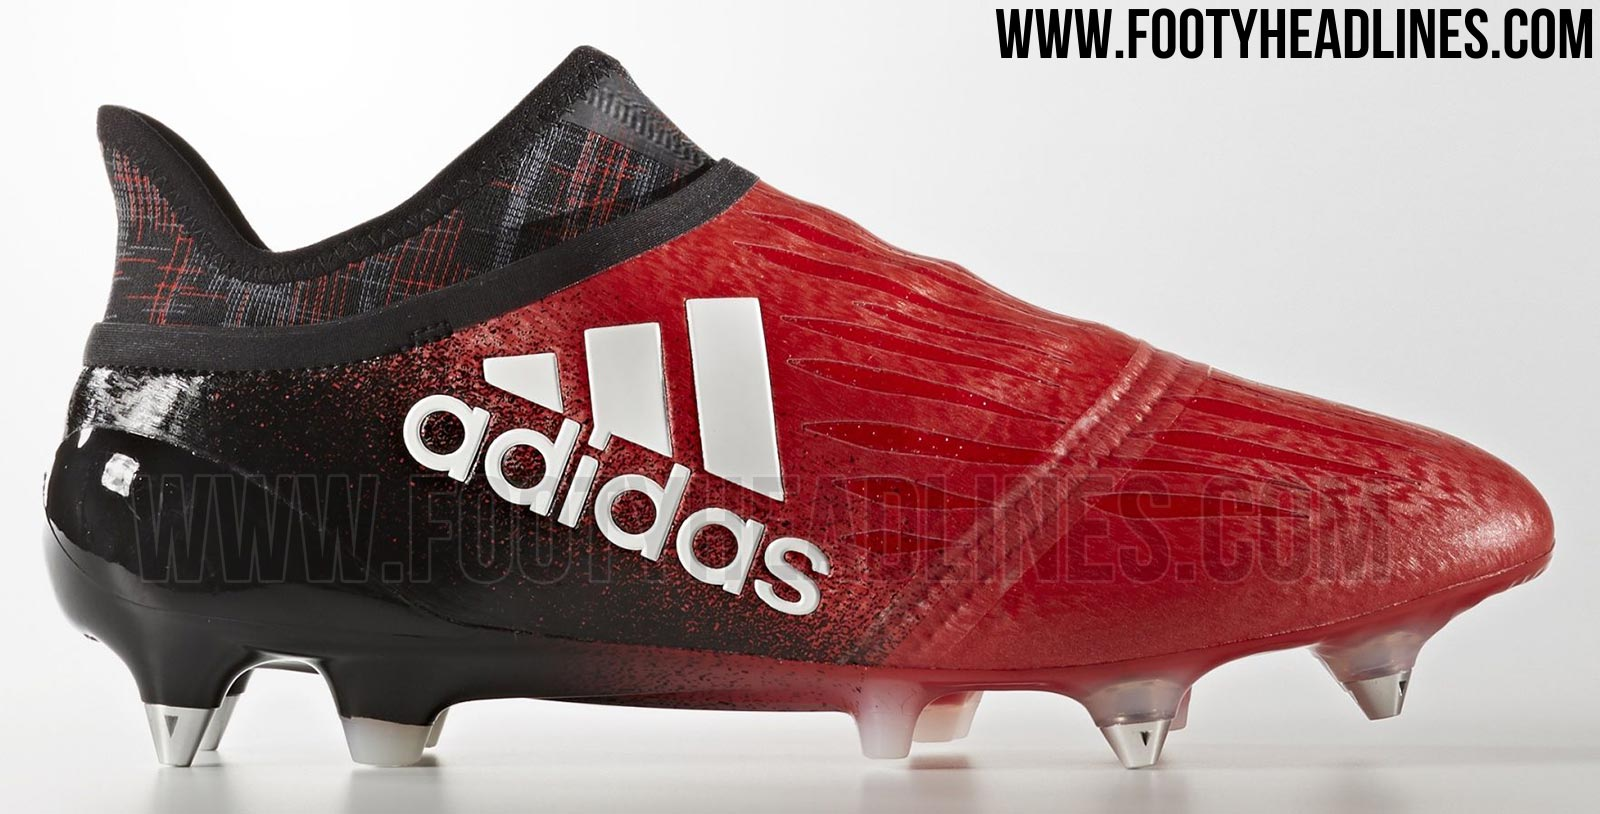 stunning adidas x 16 purechaos red limit boots released. Black Bedroom Furniture Sets. Home Design Ideas